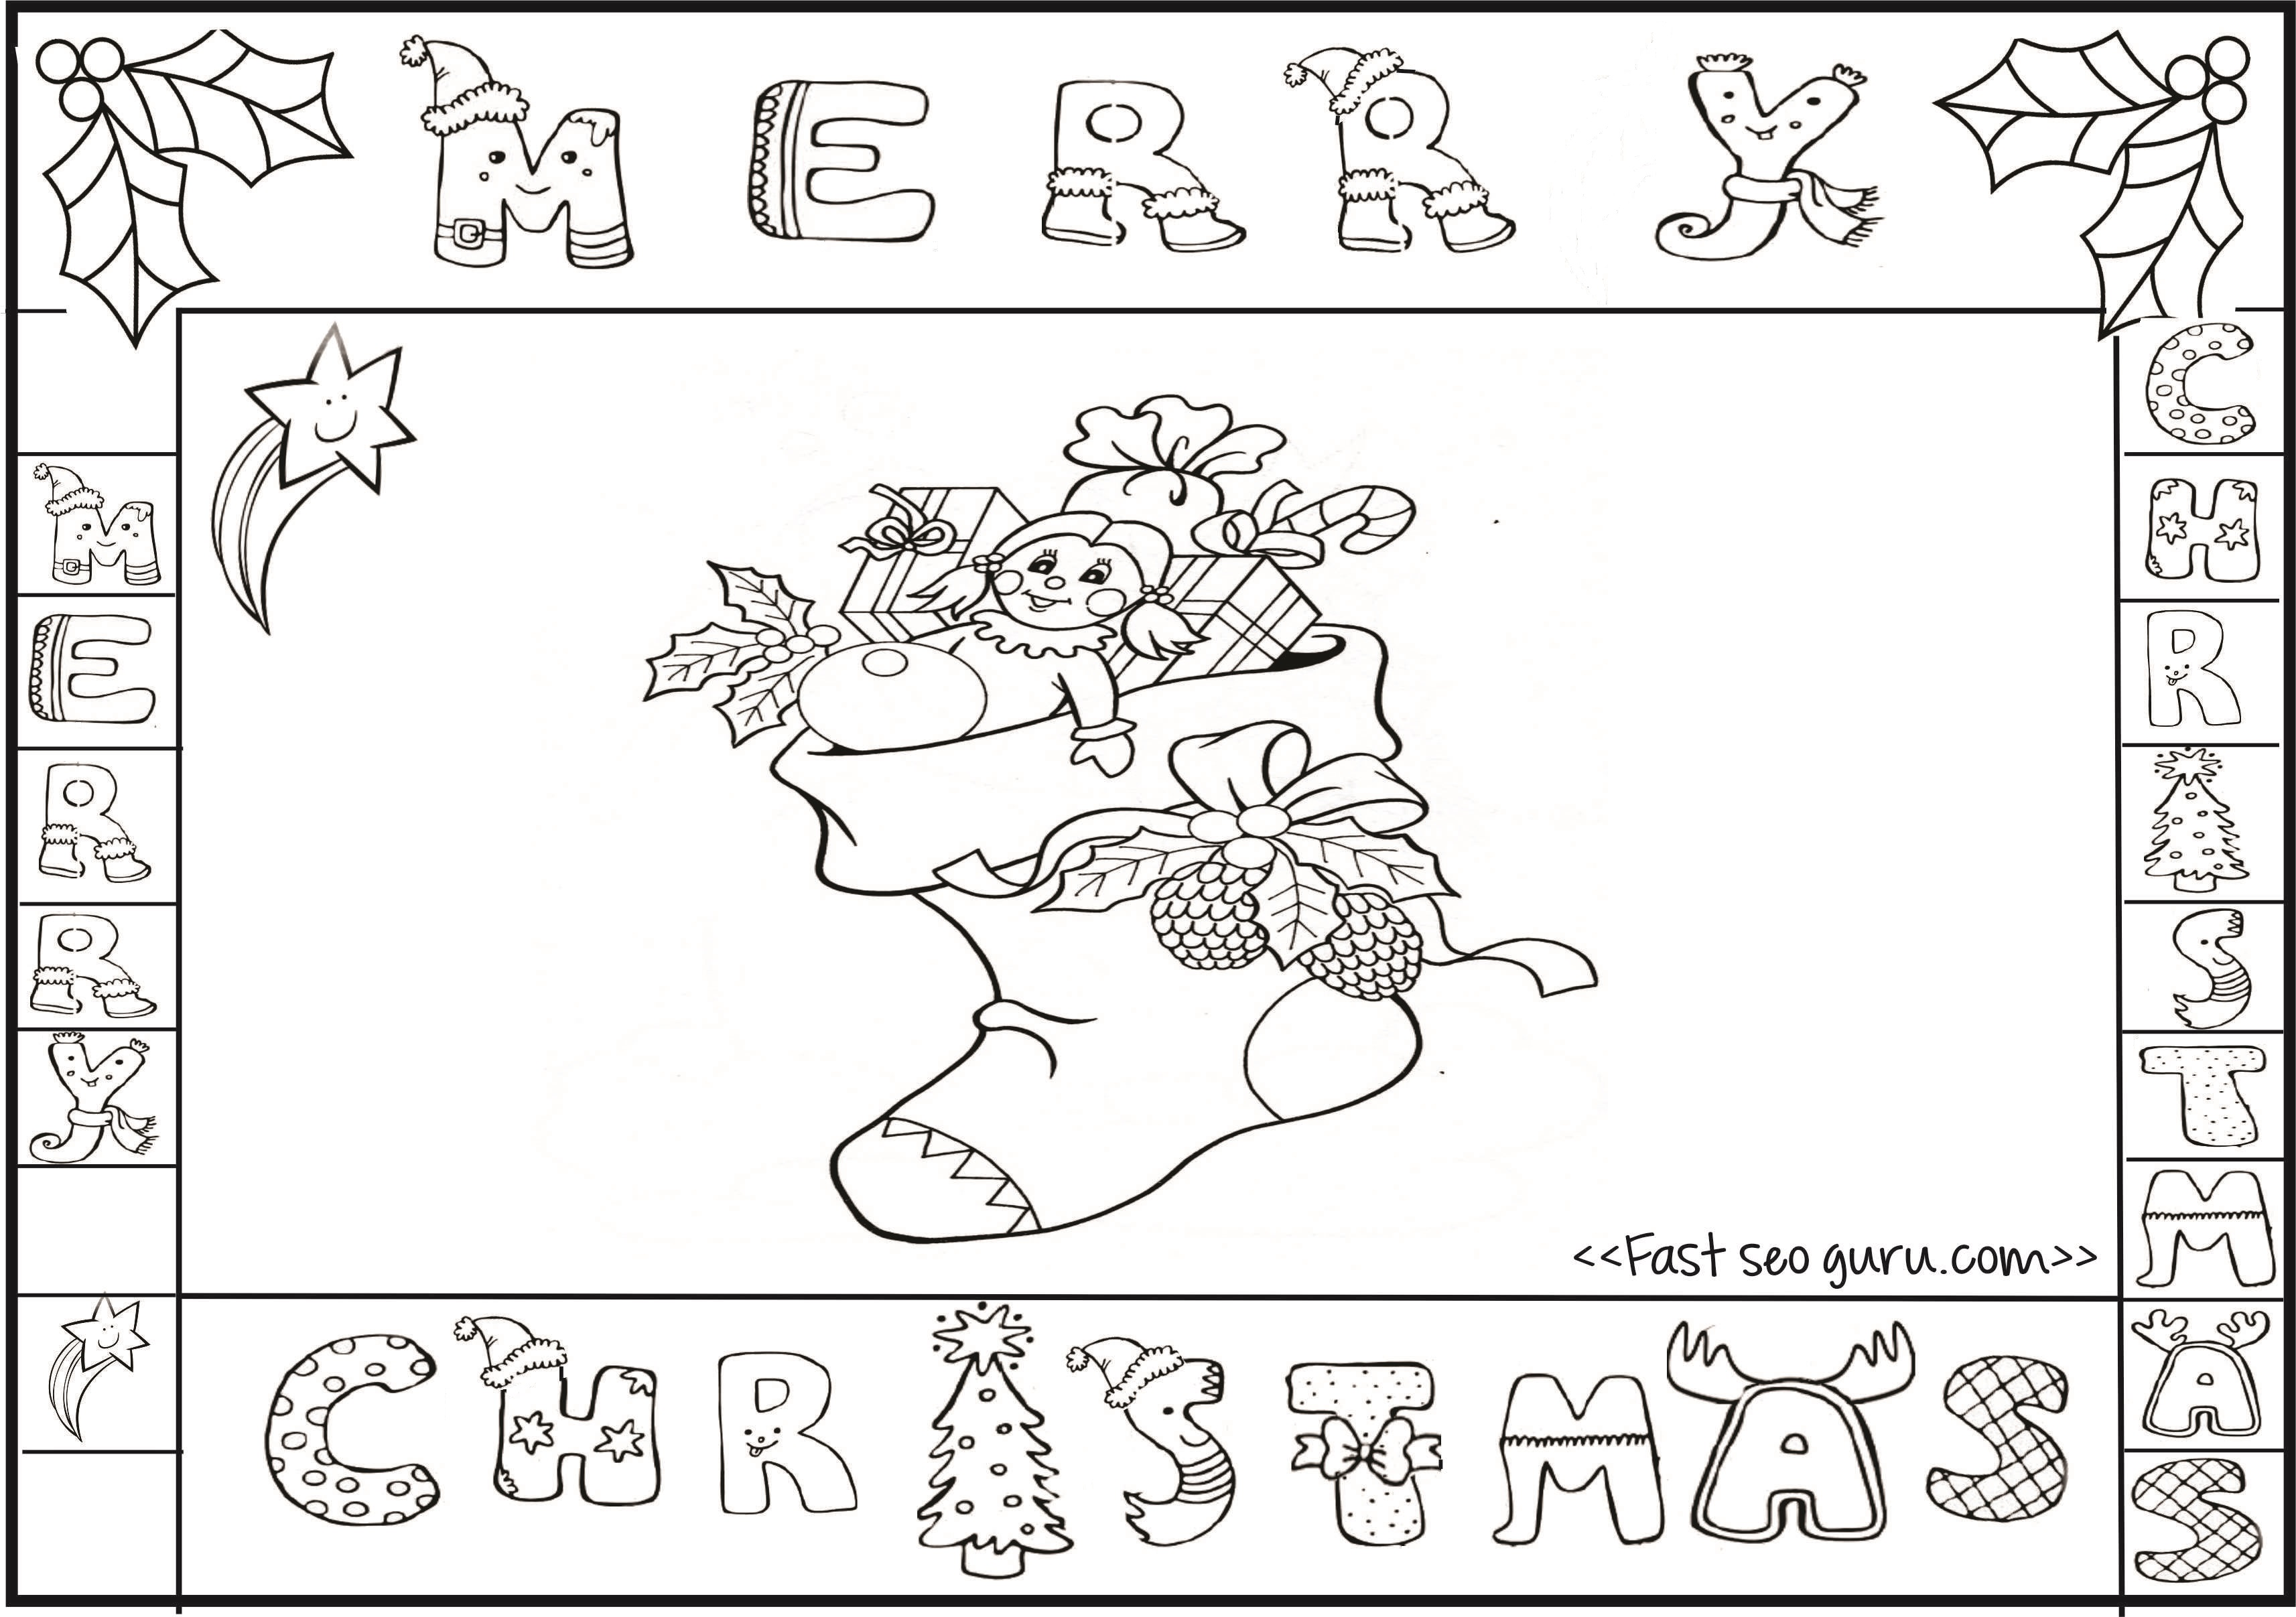 Printable merry christmas stocking colorng pages